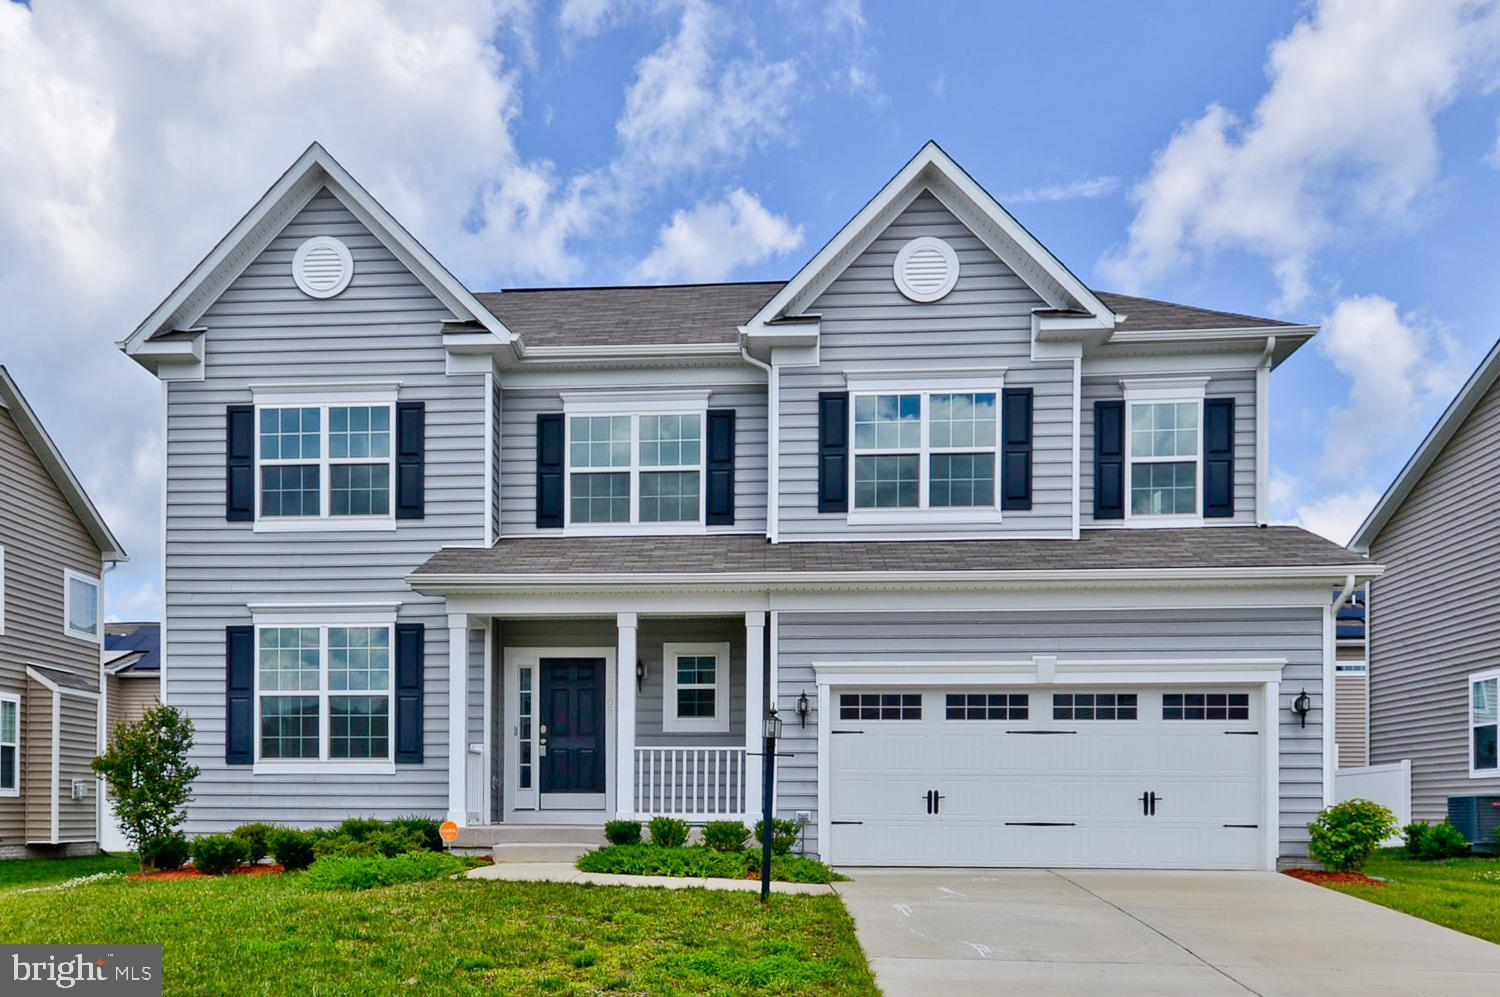 10605 JACK PINE LANE, WALDORF, MD 20603